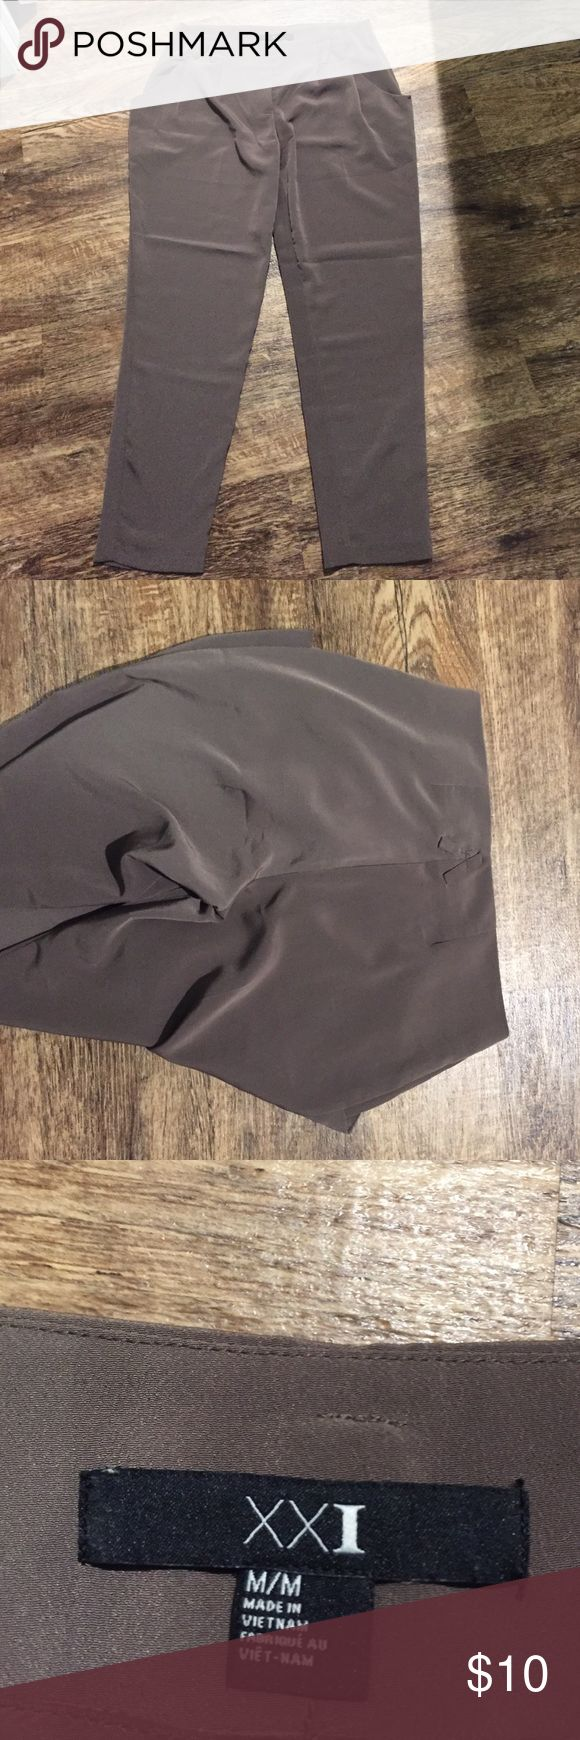 Forever 21 brown slacks Brown slacks from forever 21. Size medium fits like 4-6. Great condition only worn a few times. Forever 21 Pants Trousers